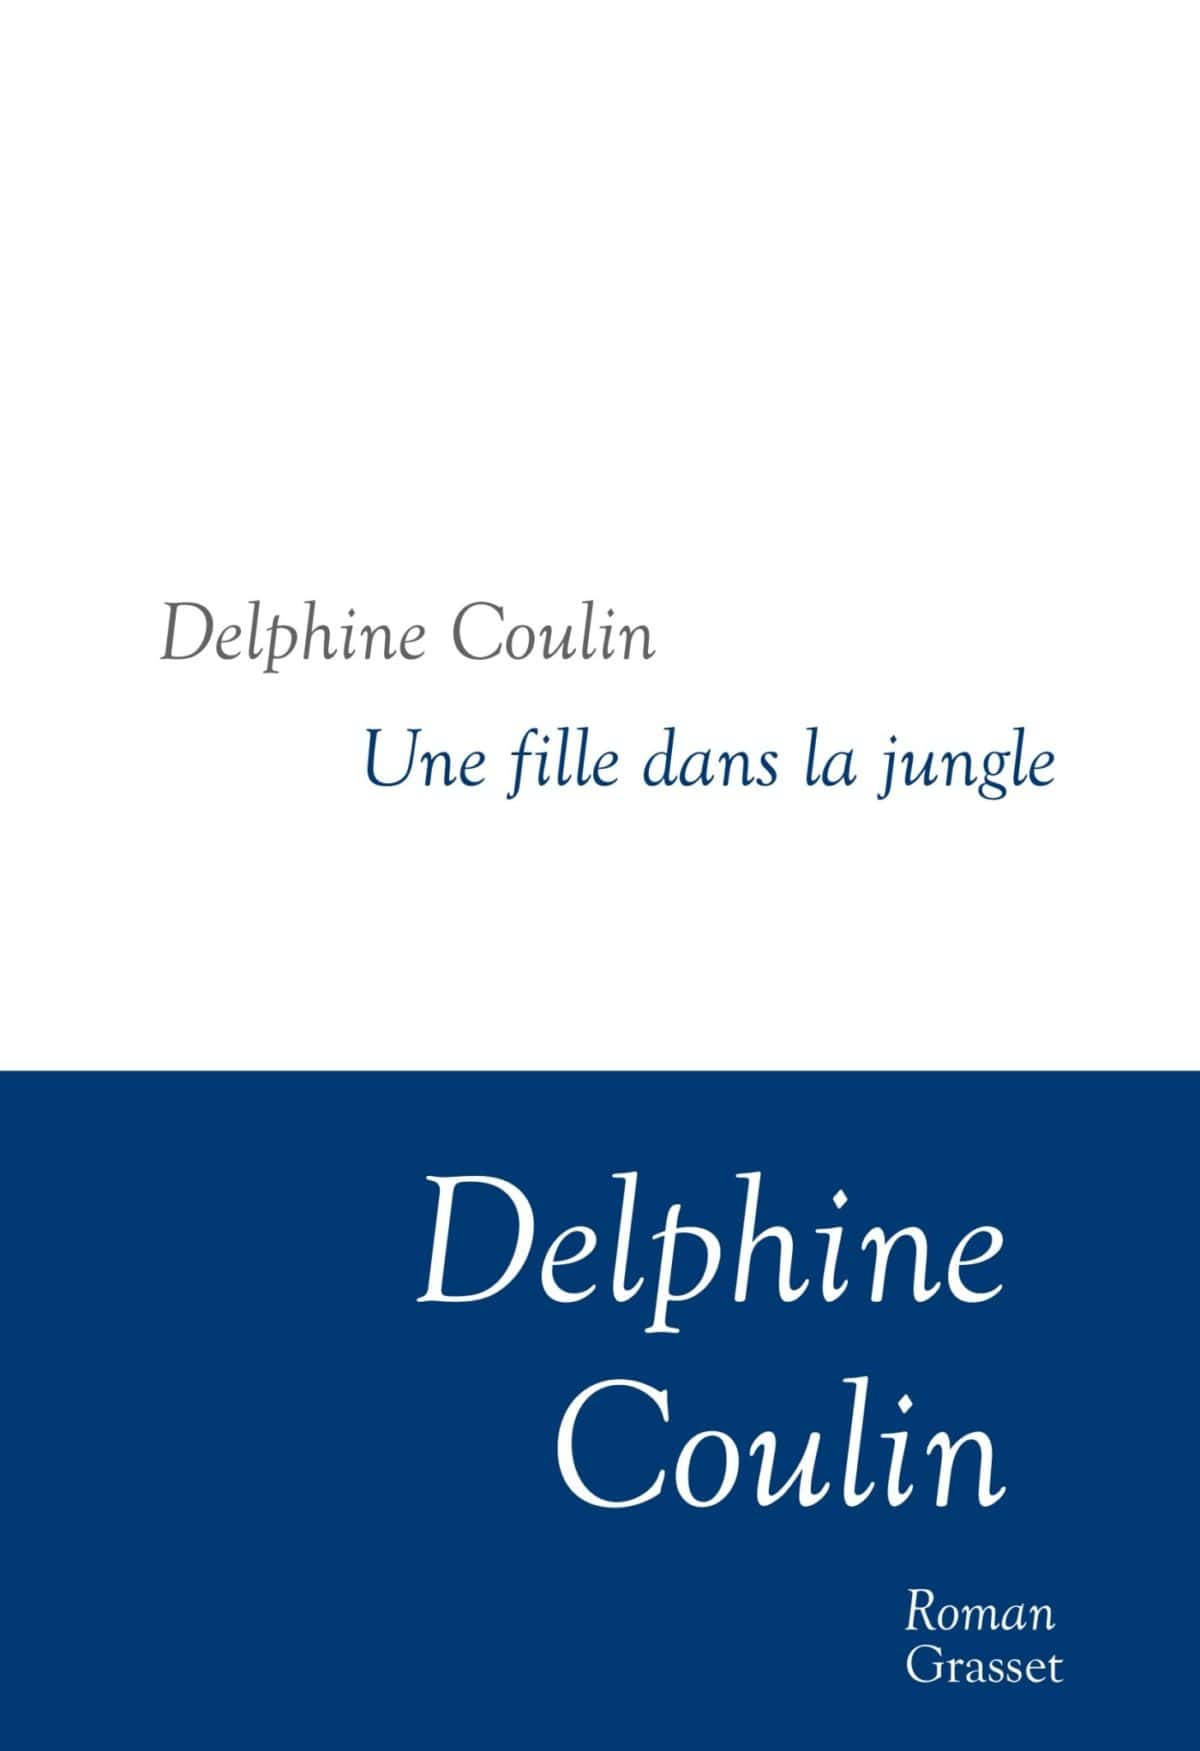 Une fille dans la jungle de Delphine Coulin, une immersion dans la jungle de Calais